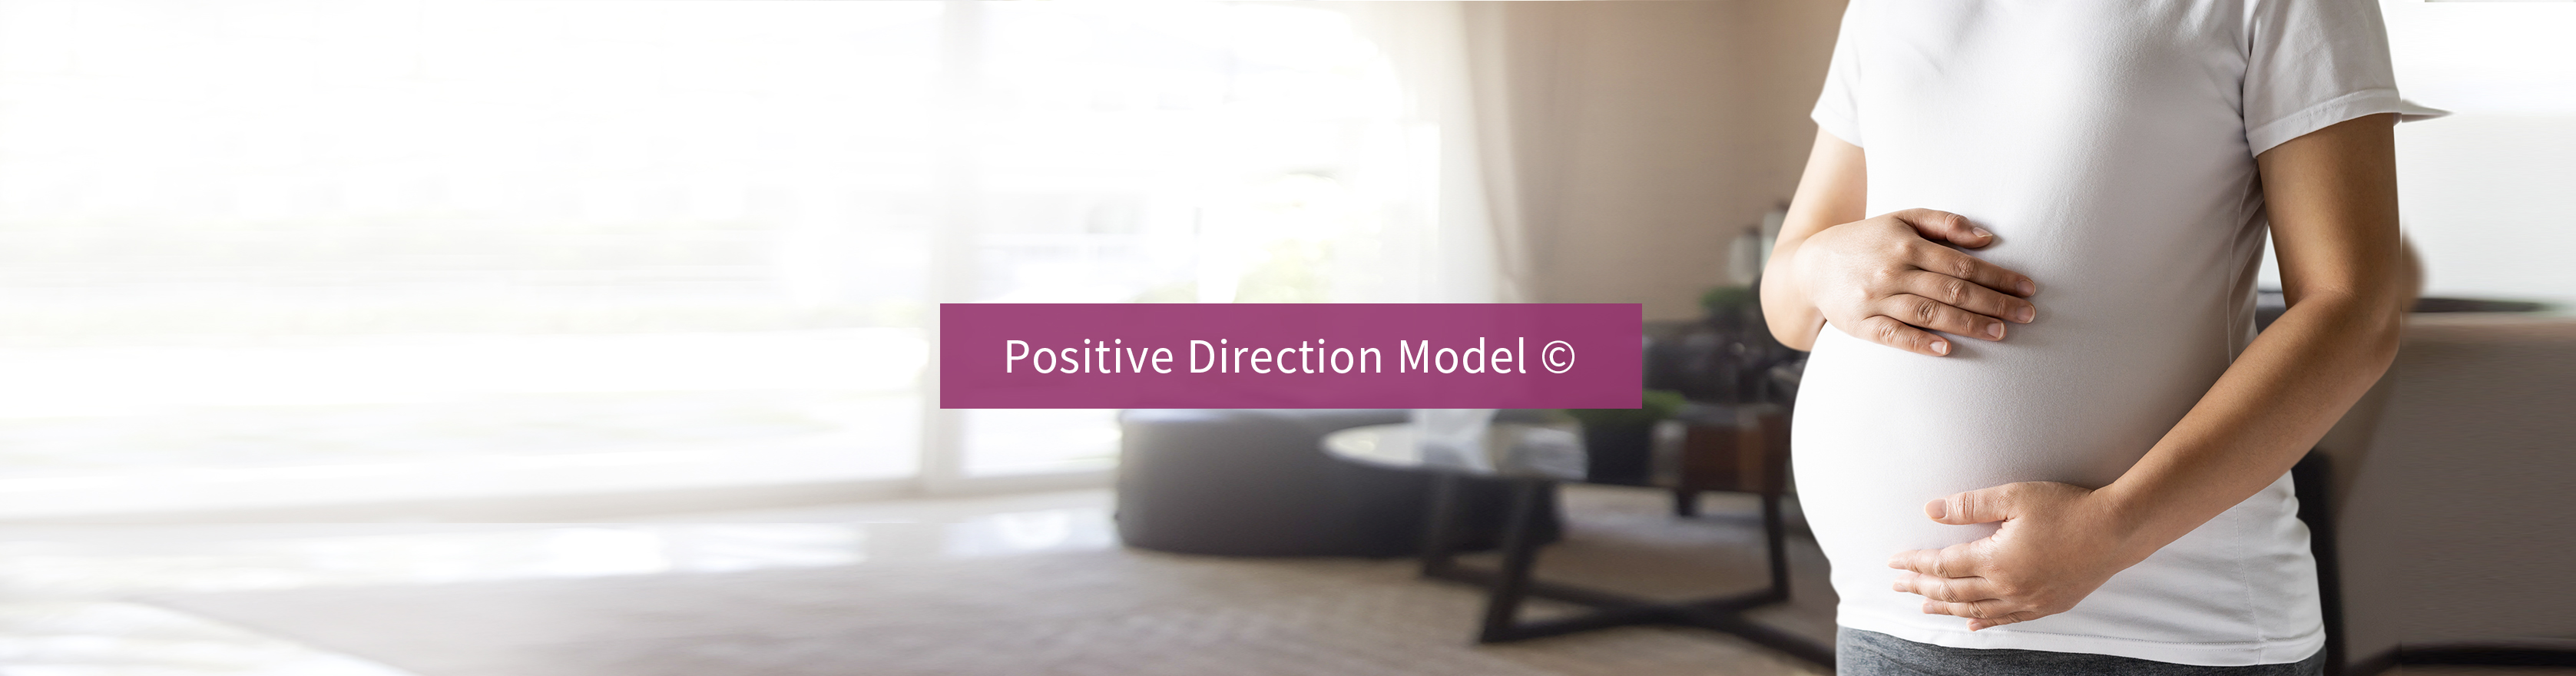 Positive Direction Model - Pregnancy additction